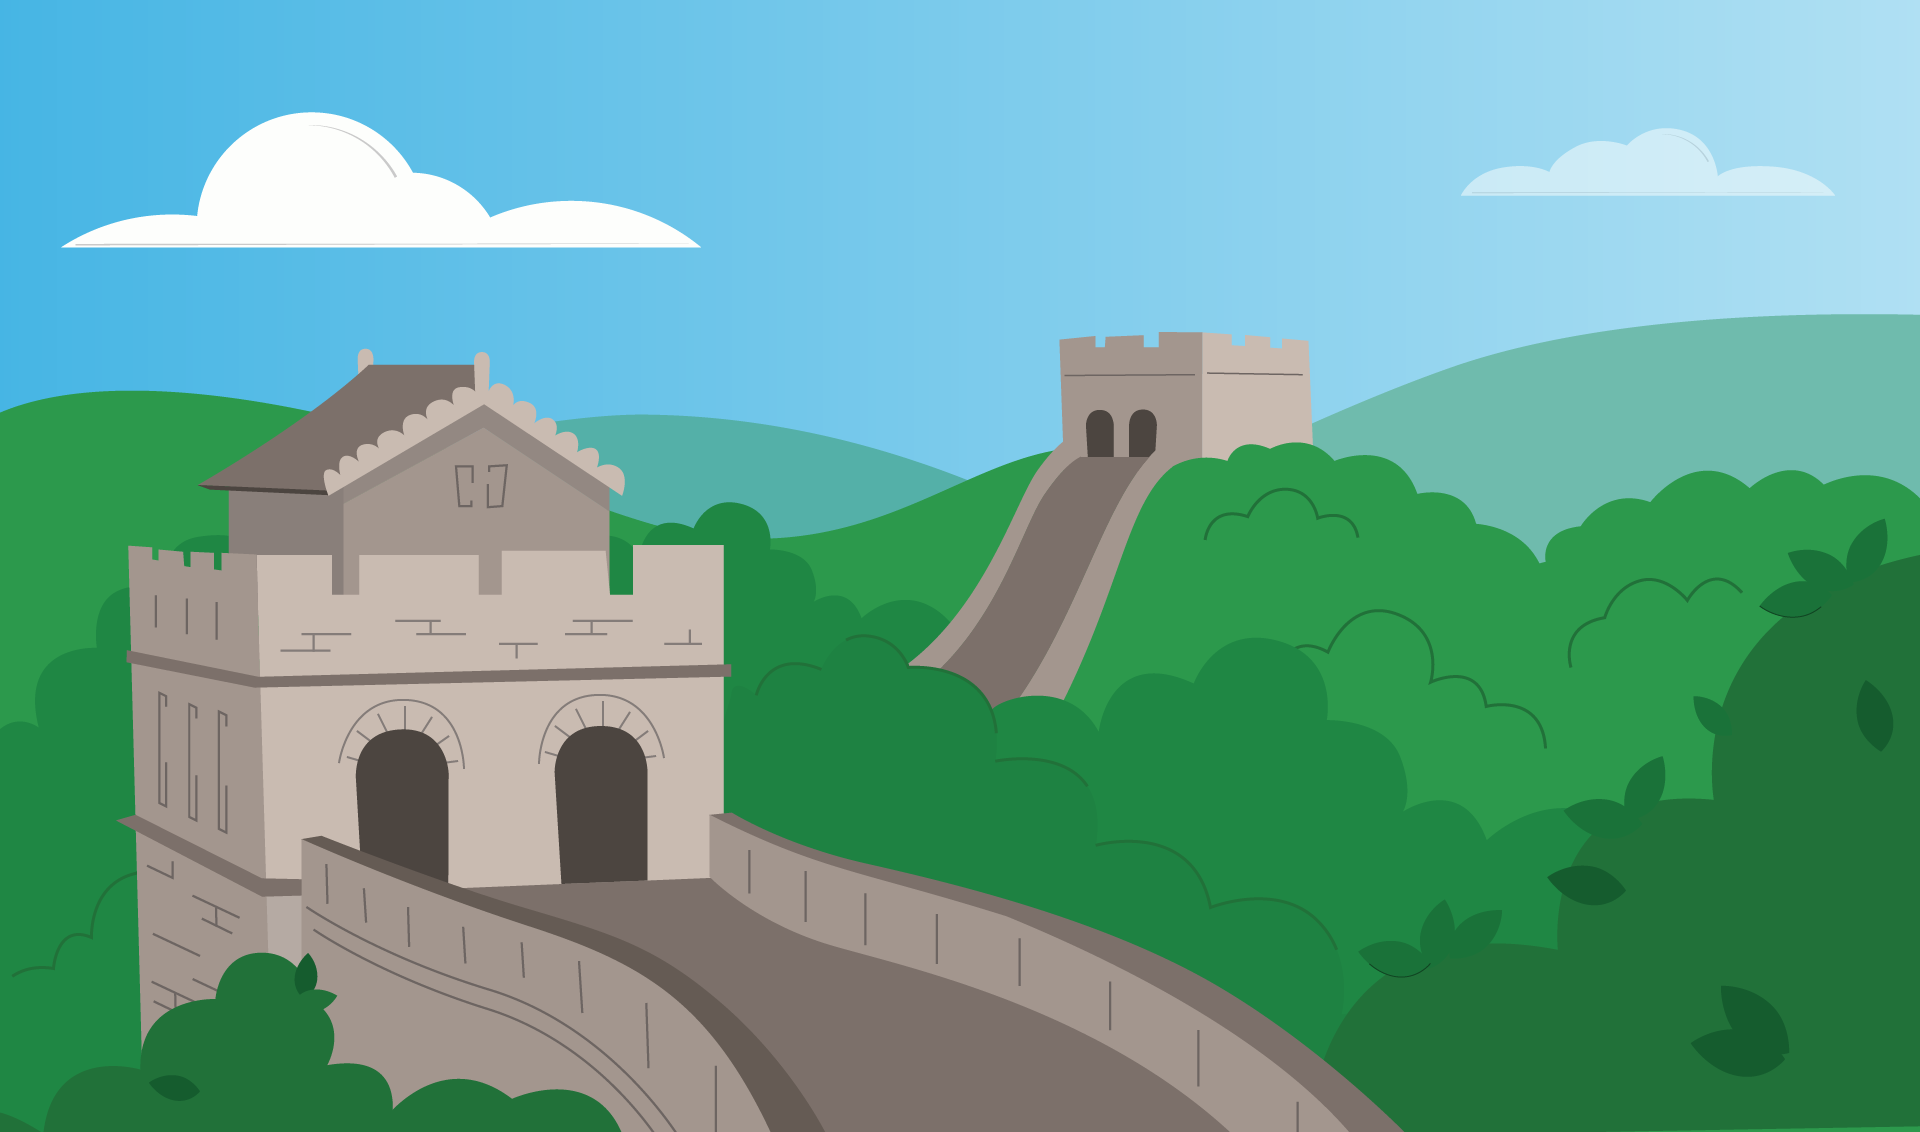 Backgrounds_Song3_GreatWall_GreatWall